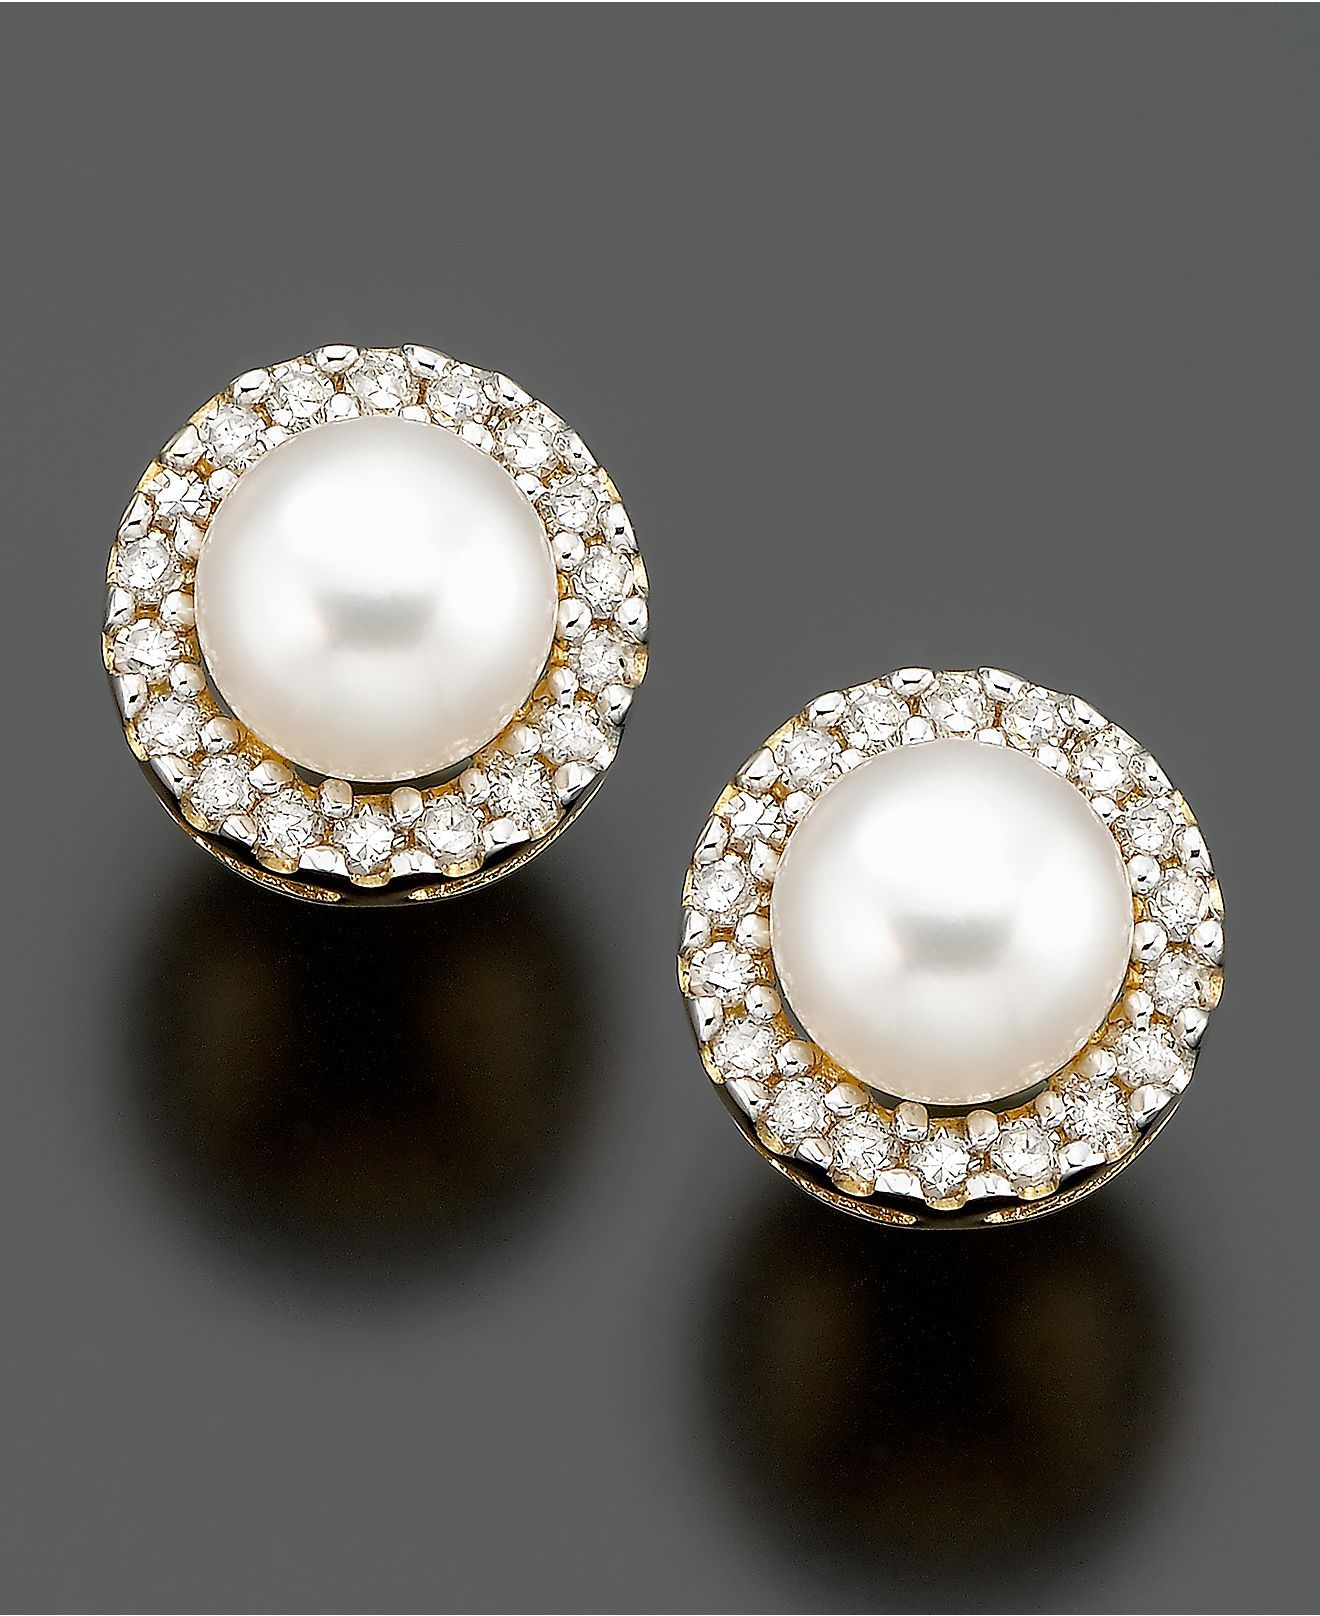 Gorgeous Pearls Ringed With Diamonds These May Be My New Daily